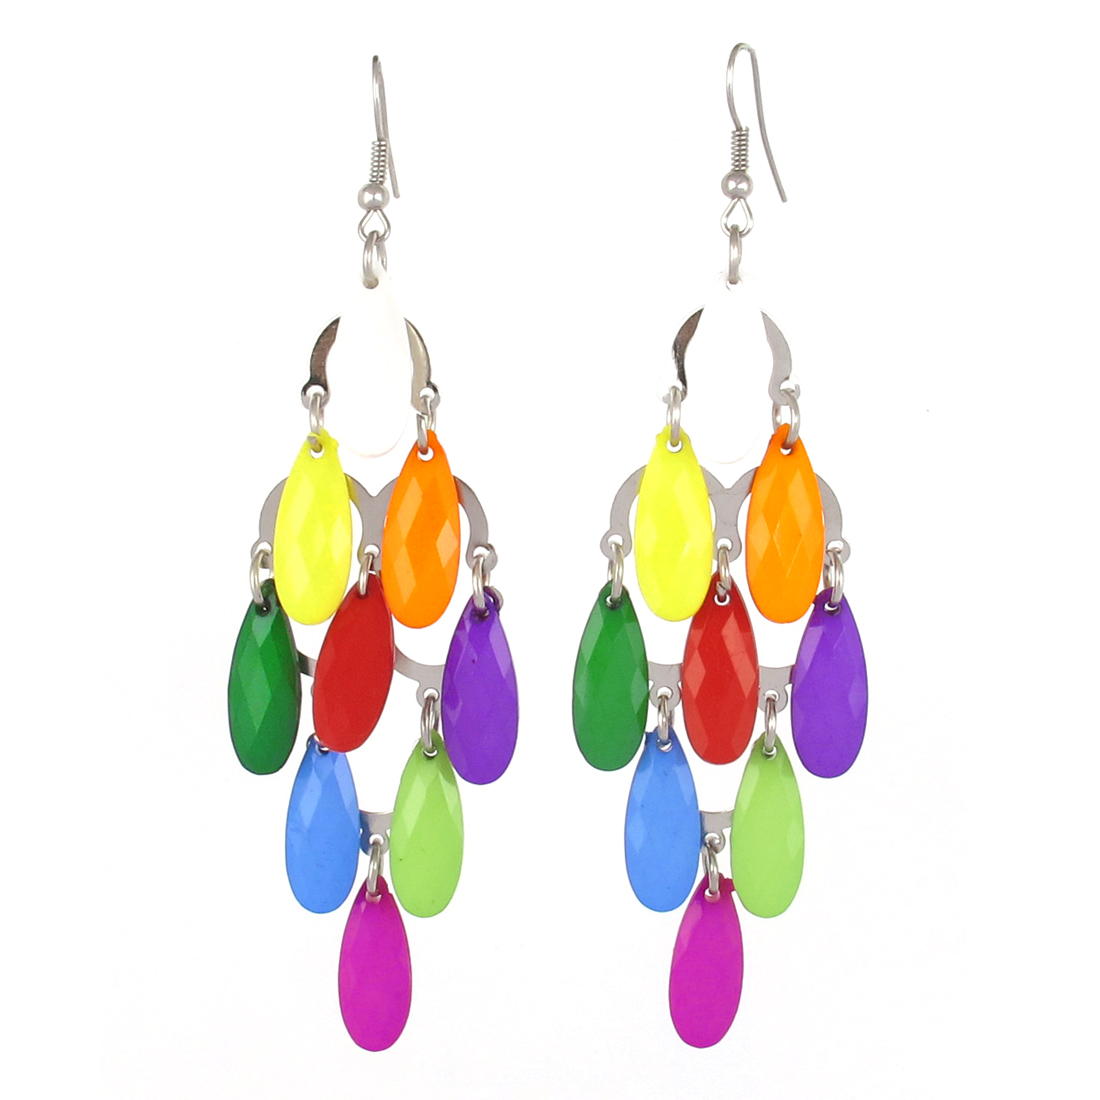 Ladies Silver Tone Half Circle Chain 9 Plastic Oval Fish Hook Earrings Multicolor Pair